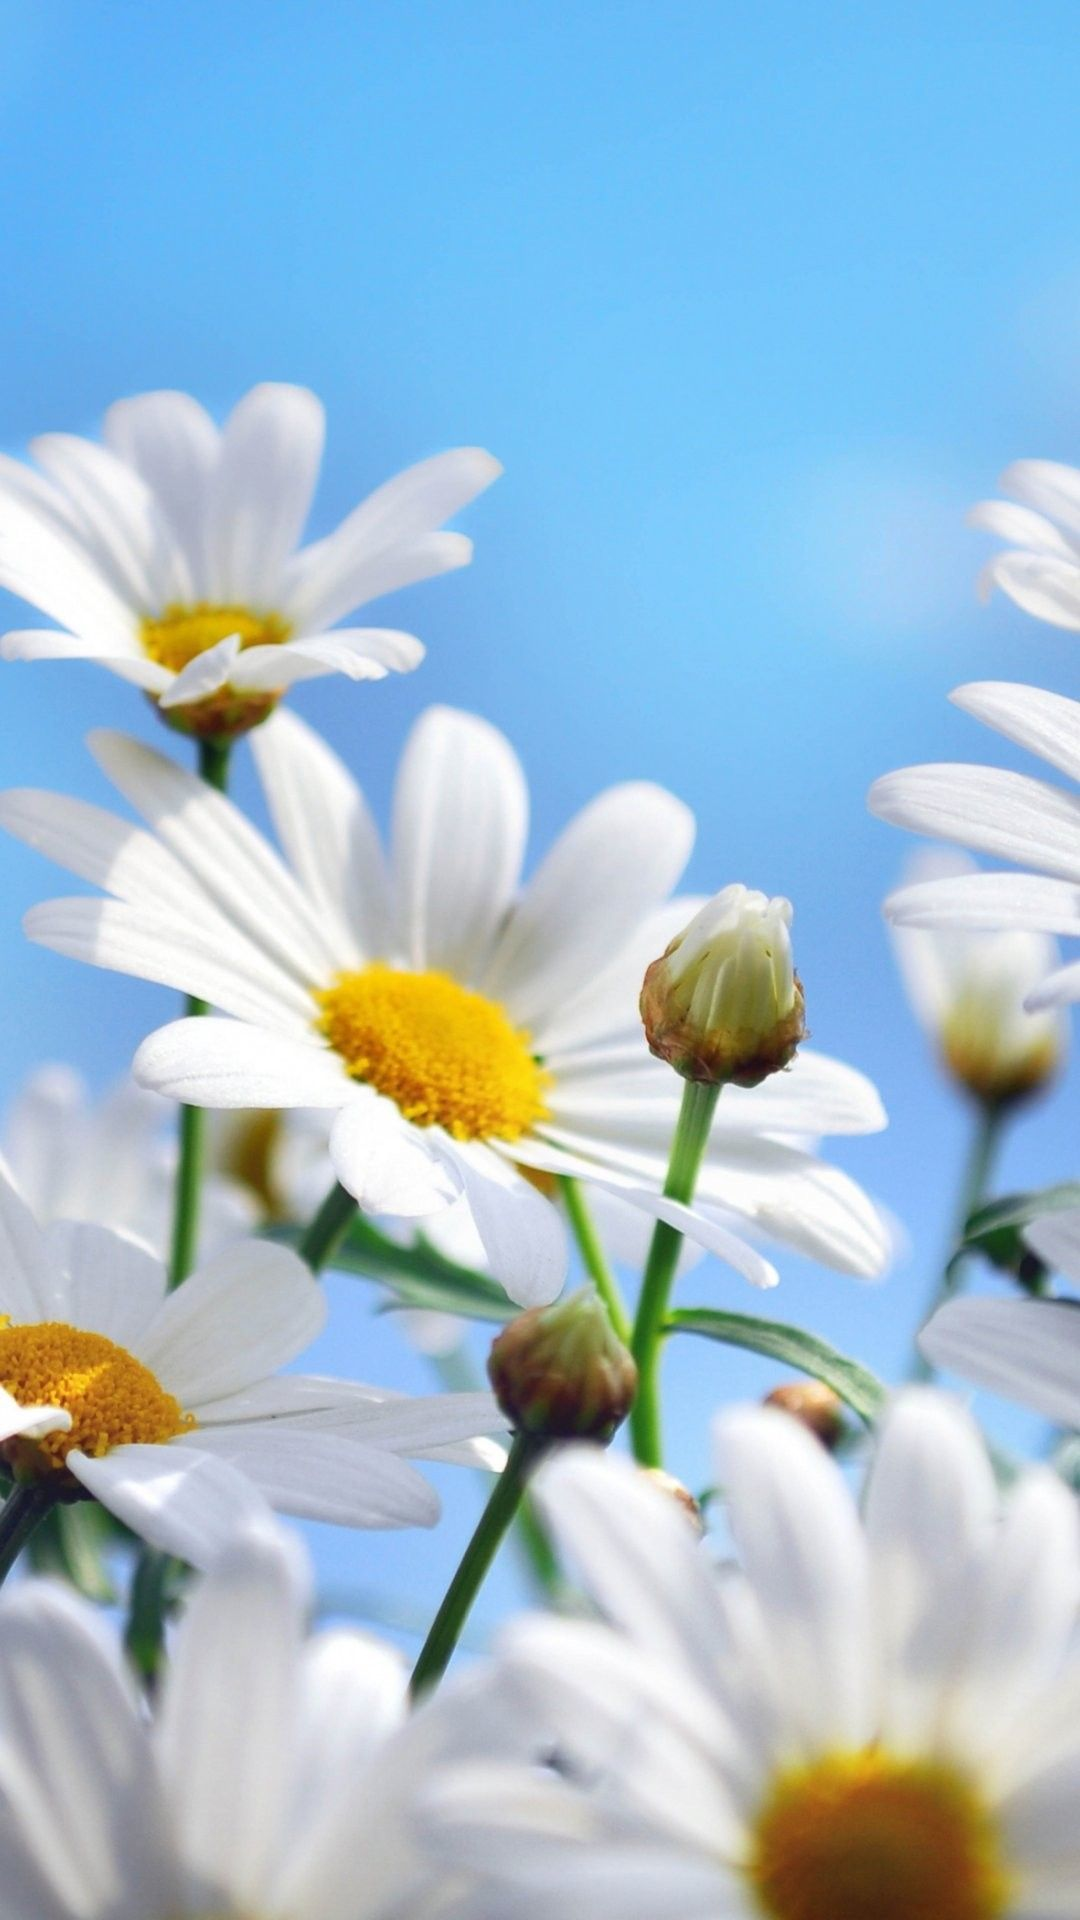 Daisies Hd Iphone 6 Plus Wallpaper 19740 Flowers Iphone 6 Plus